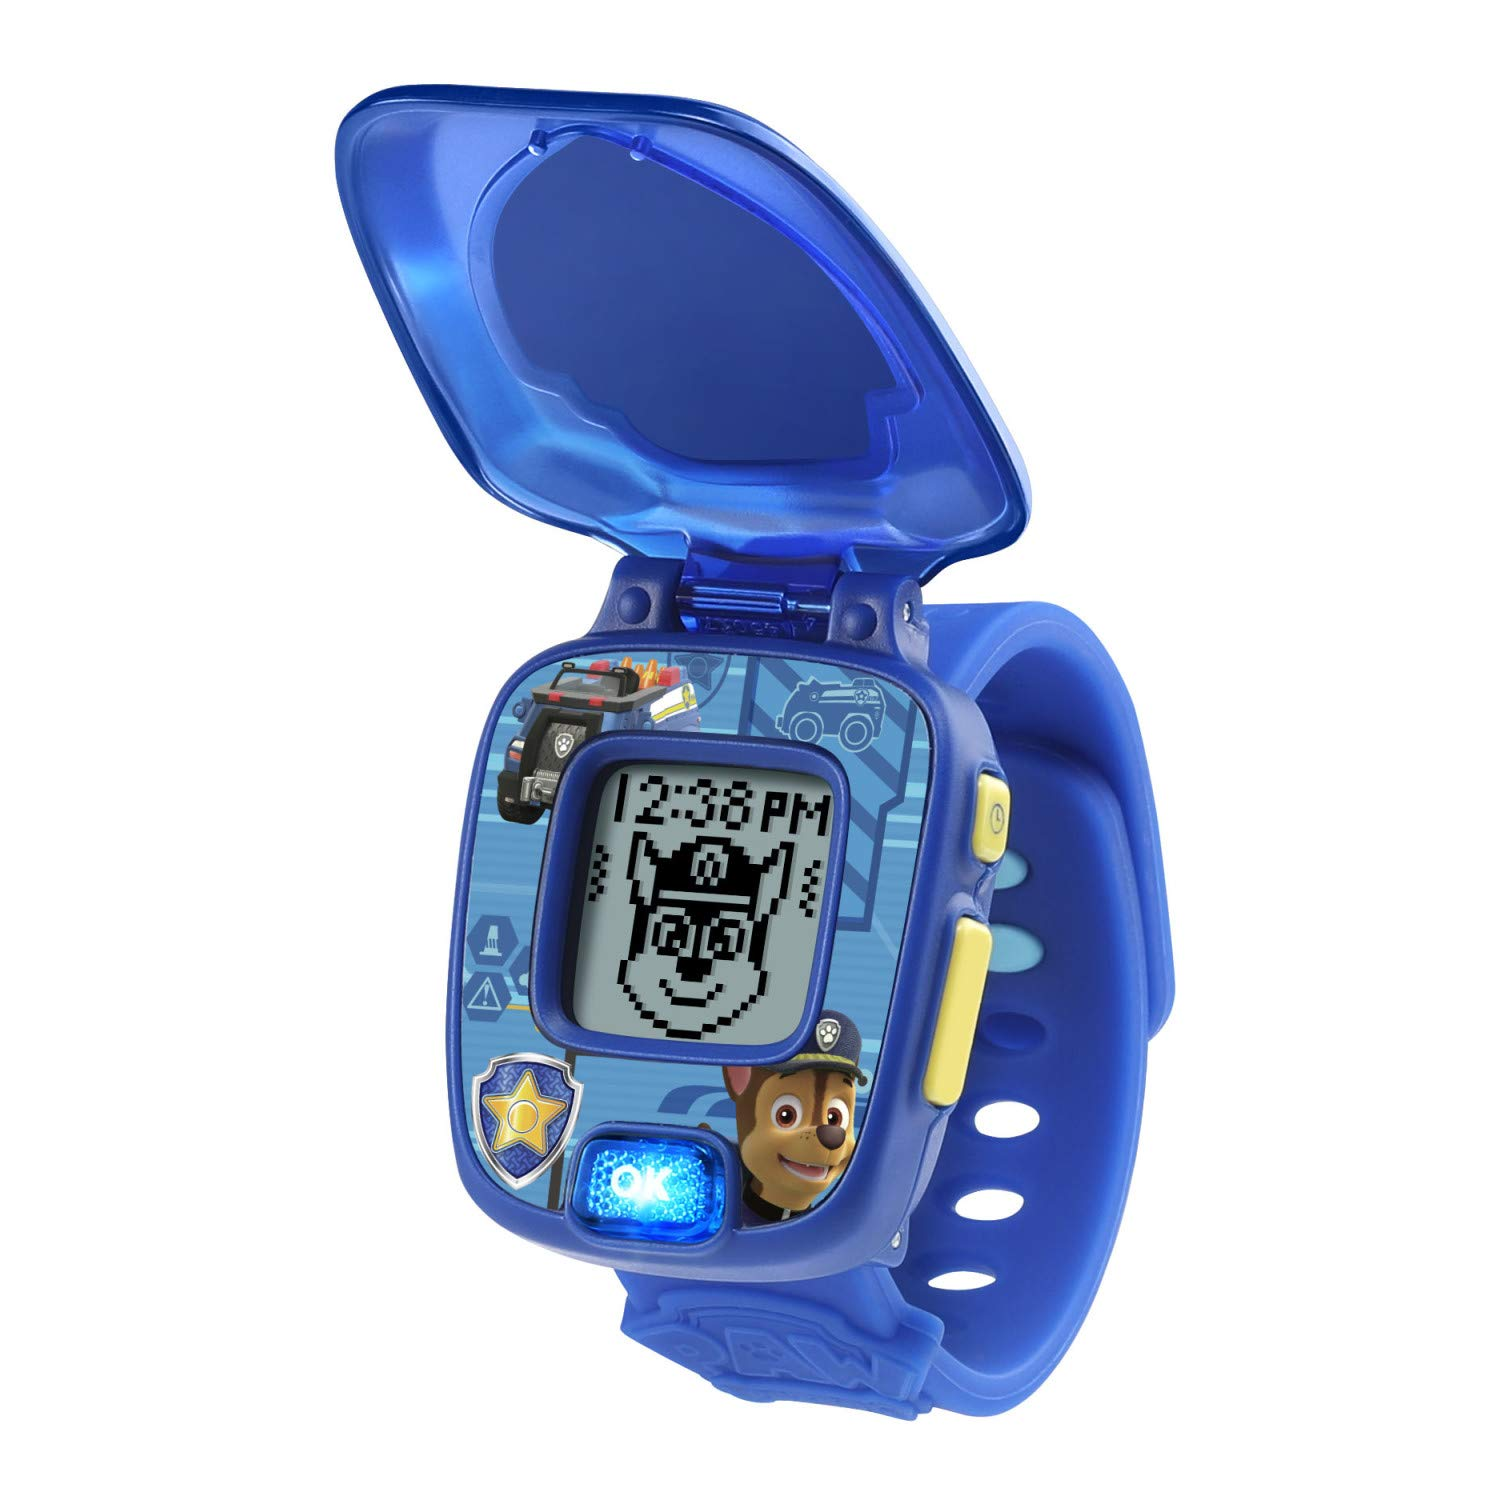 VTech Paw Patrol Chase Learning Watch, Blue by VTech